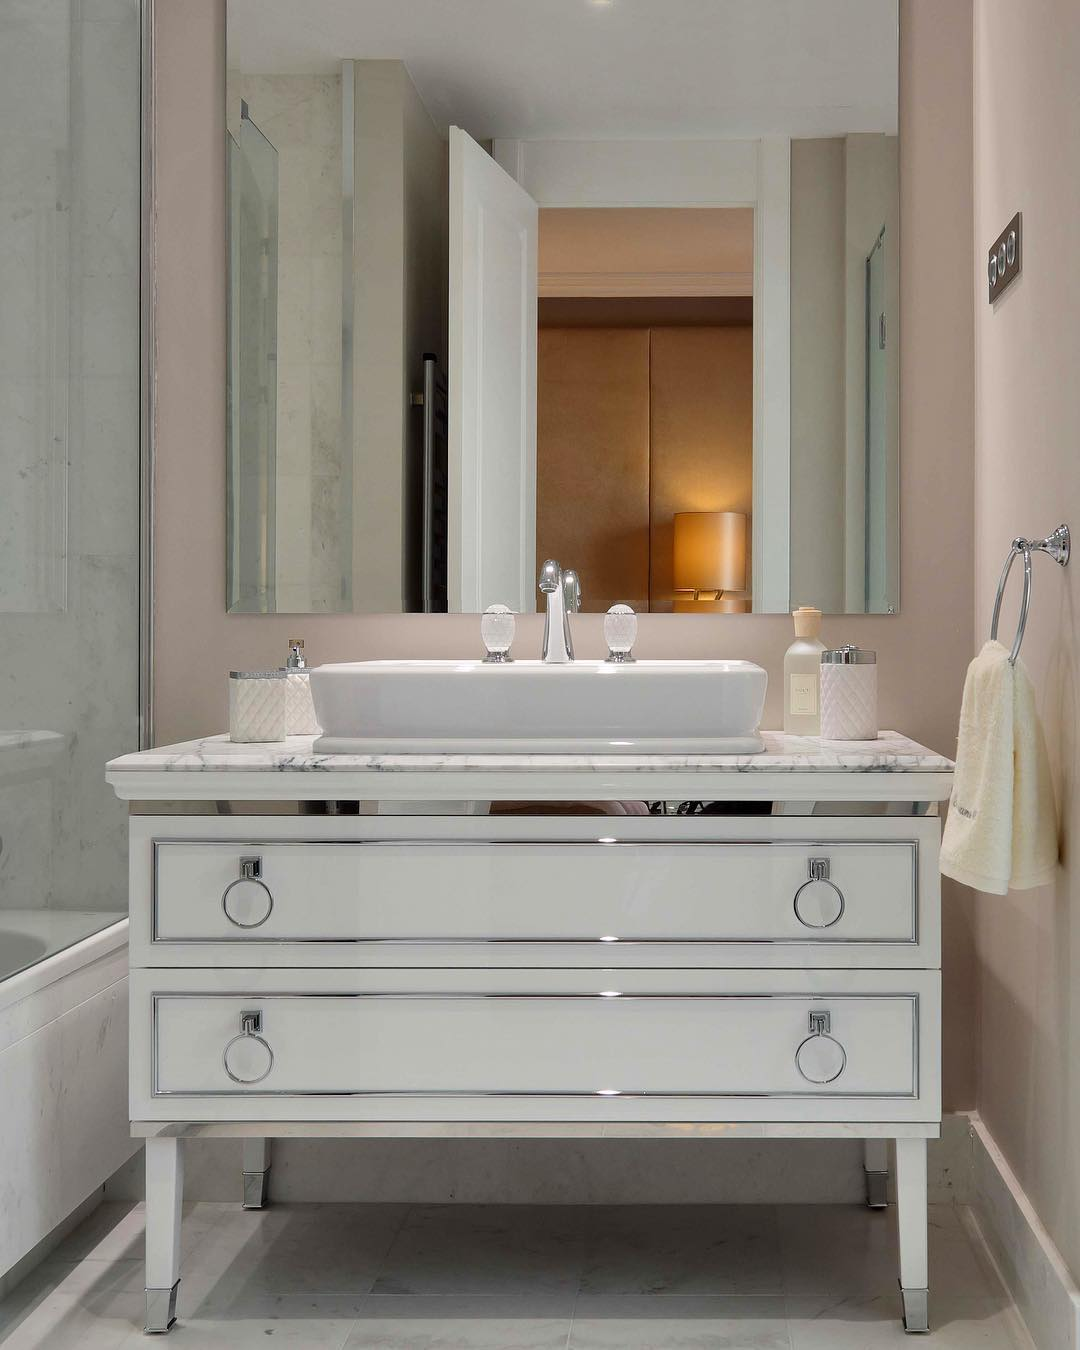 Dôme Interiors - The Elegance And Sophistication Of Interior Design dôme interiors Dôme Interiors – The Elegance And Sophistication Of Bathroom Design D  me Interiors The Elegance And Sophistication Of Interior Design 4